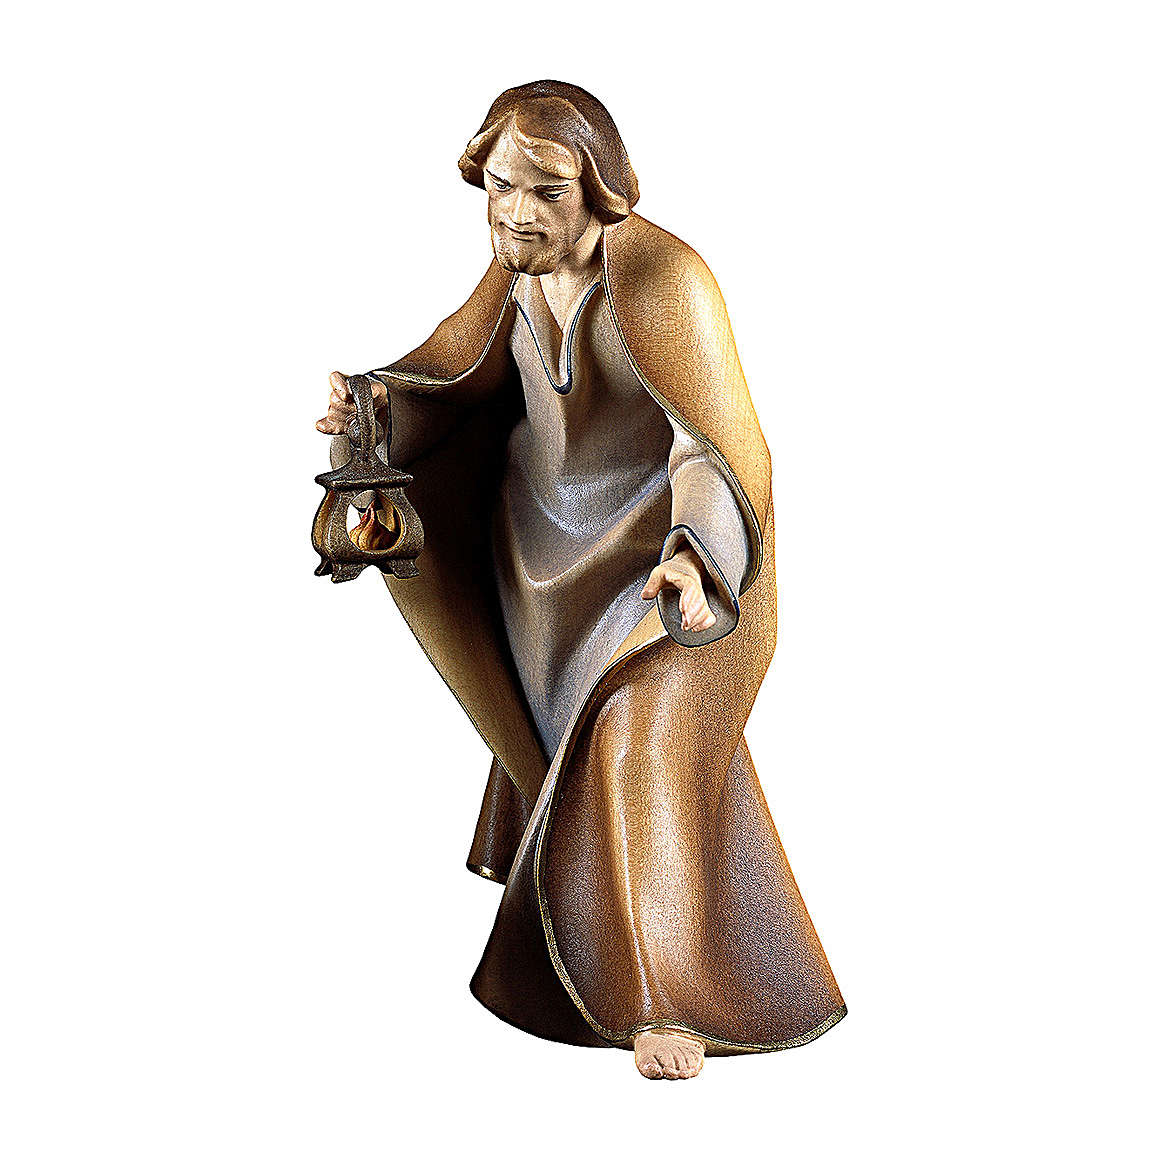 Saint Joseph Figurine 10 Cm Nativity Original Redeemer Online Sales On Holyart Com